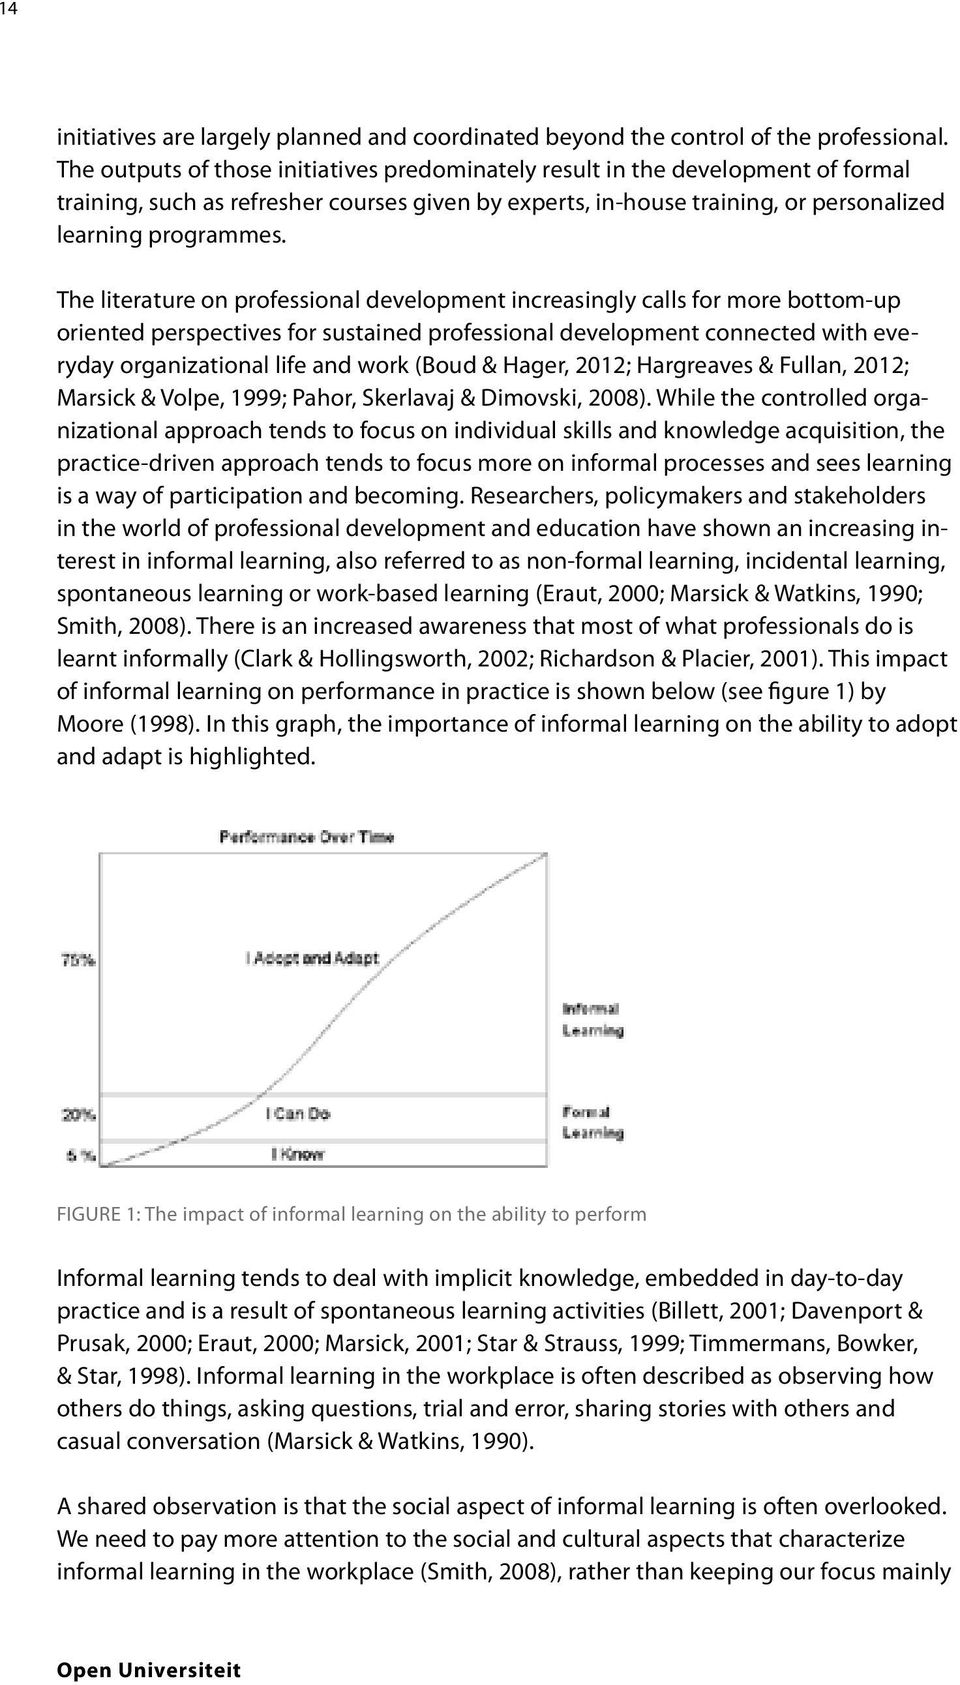 The literature on professional development increasingly calls for more bottom-up oriented perspectives for sustained professional development connected with everyday organizational life and work